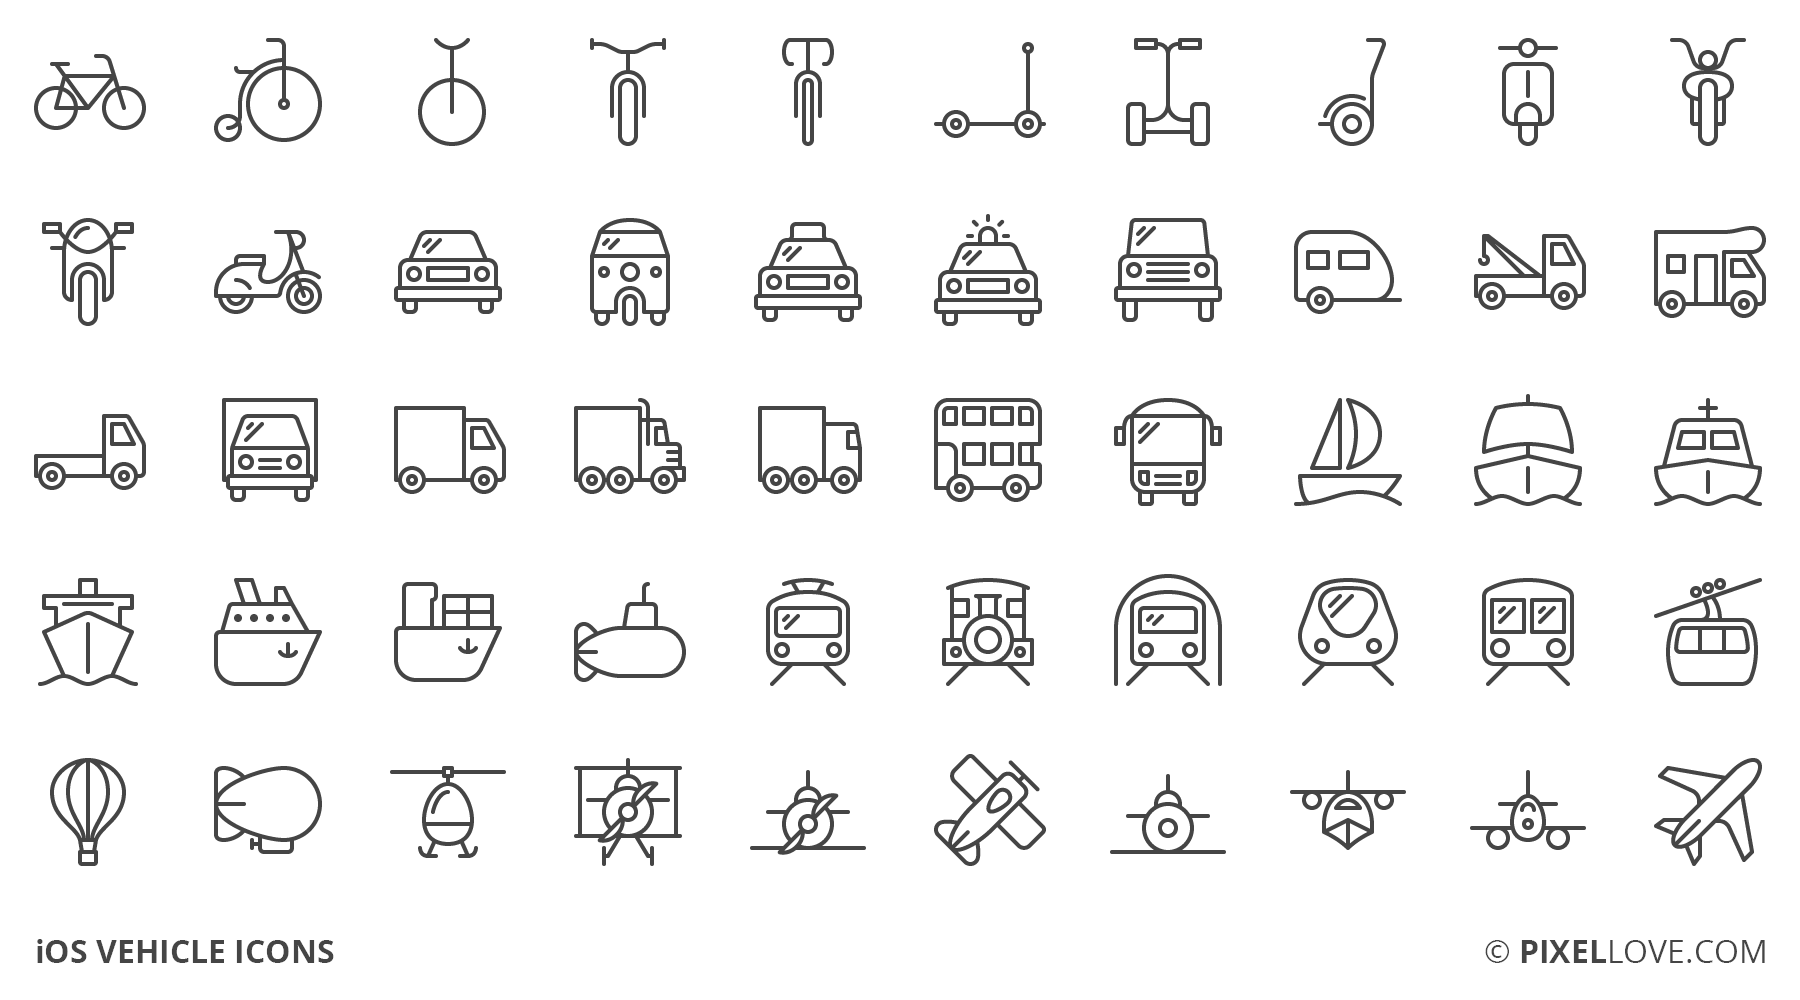 A Set Of Ios Tab Bar Icons Toolbar Icons And 3d Touch Icons Of